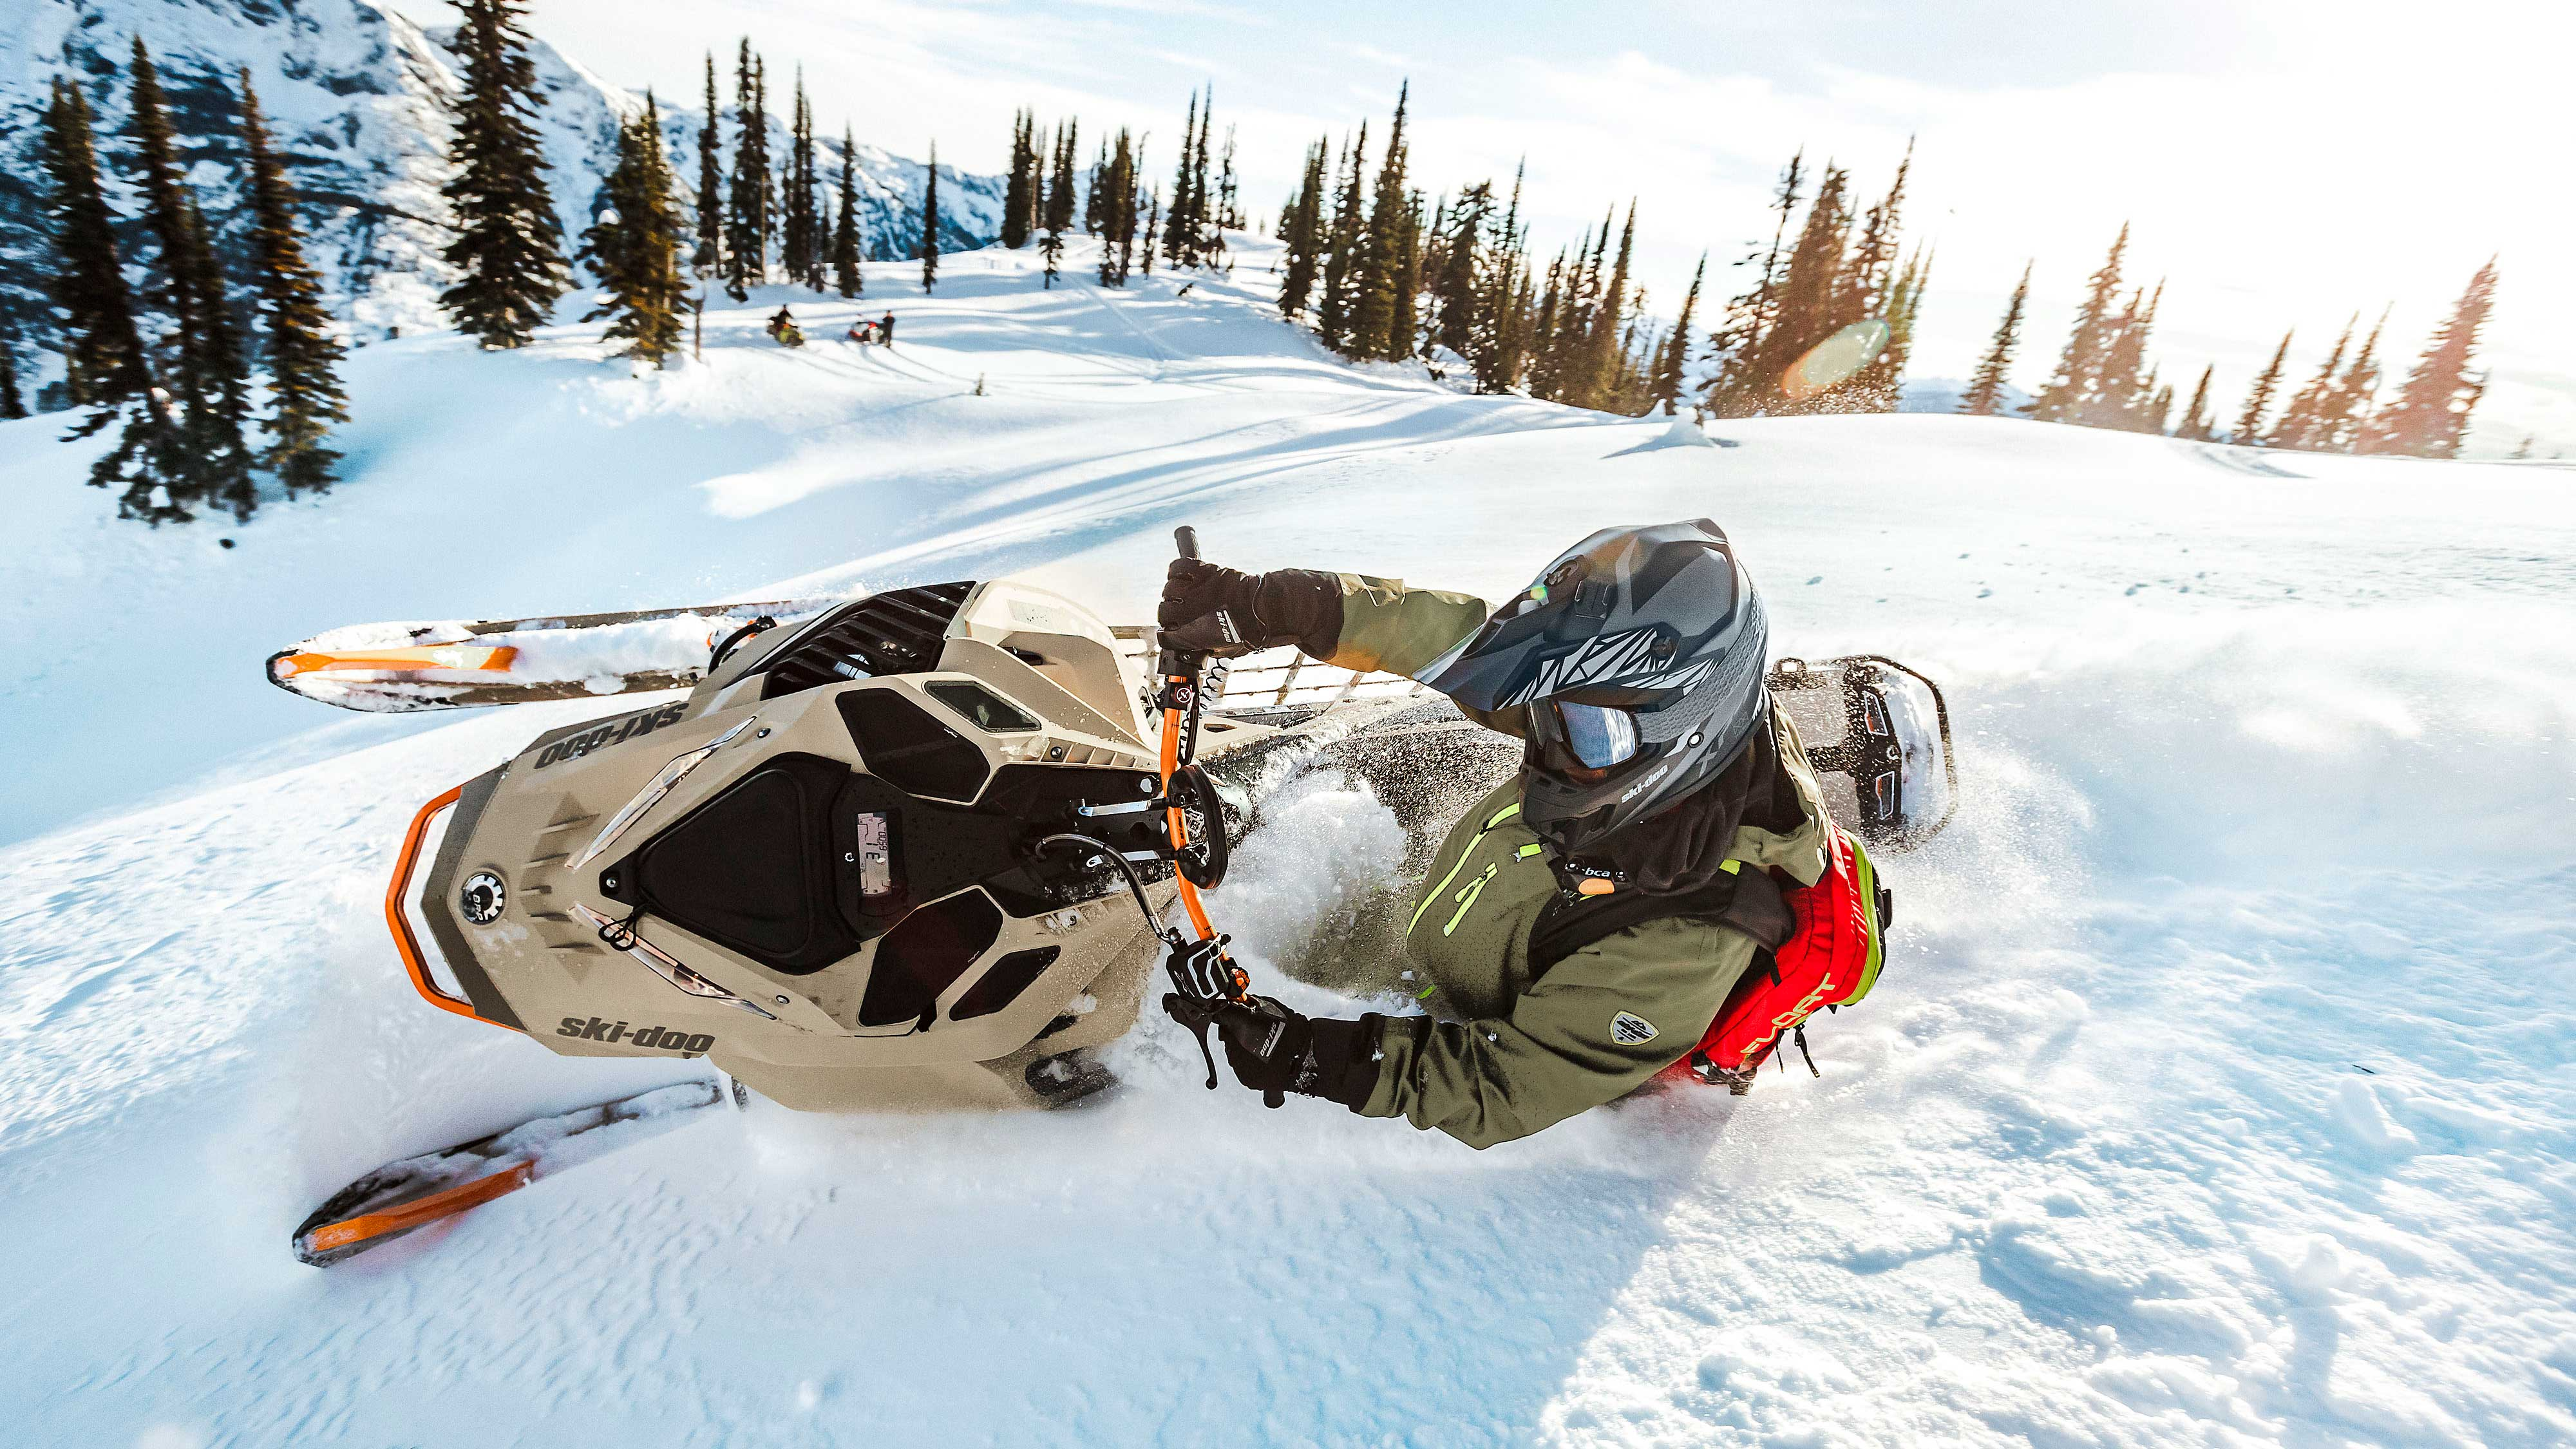 Rider enjoying deep powder with his Ski-Doo Freeride